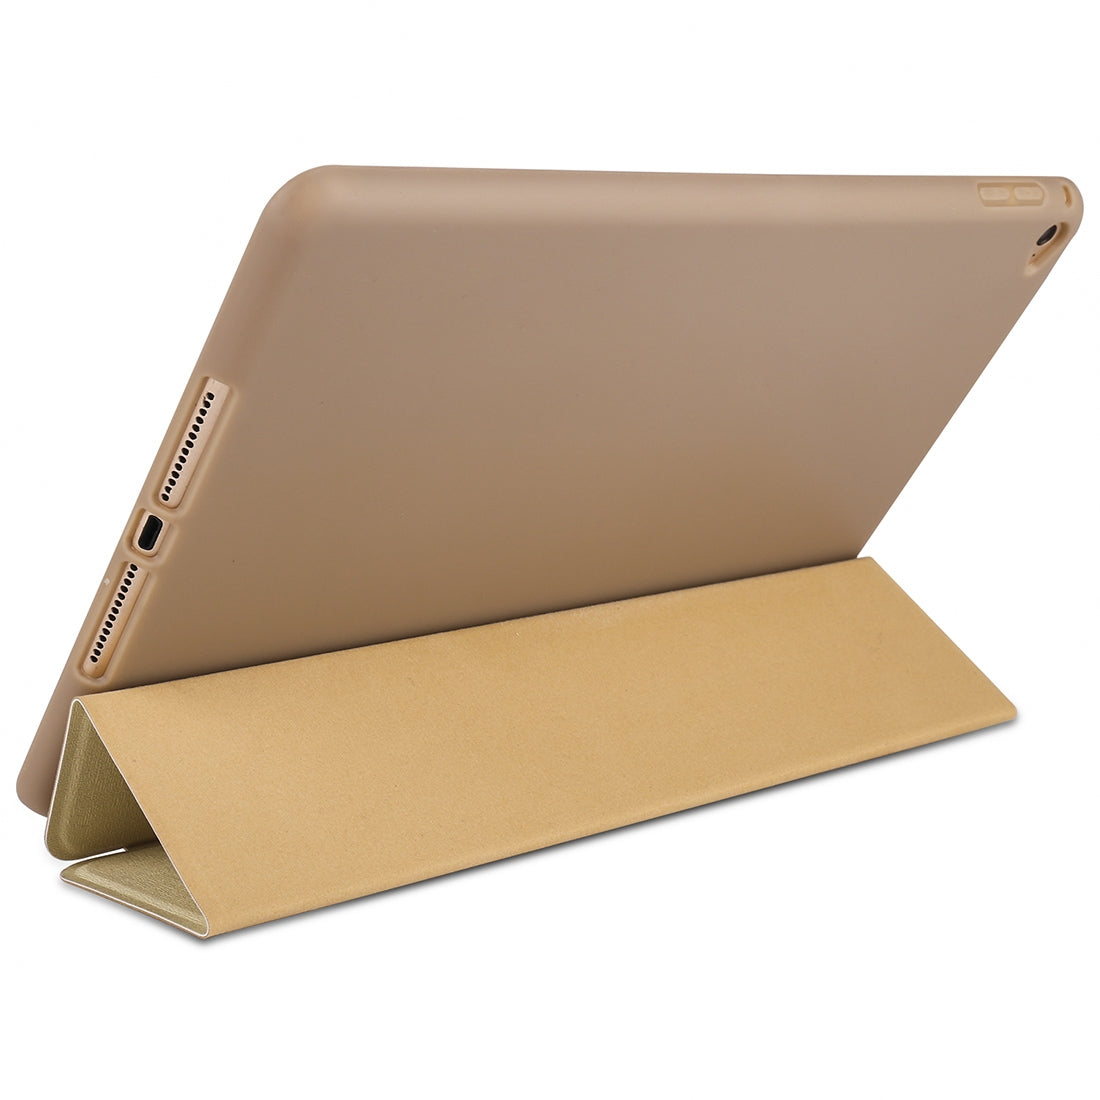 Maple Pattern Horizontal Flip PU Leather Case for iPad mini 4, with Three-folding Holder & Honeycomb TPU Cover